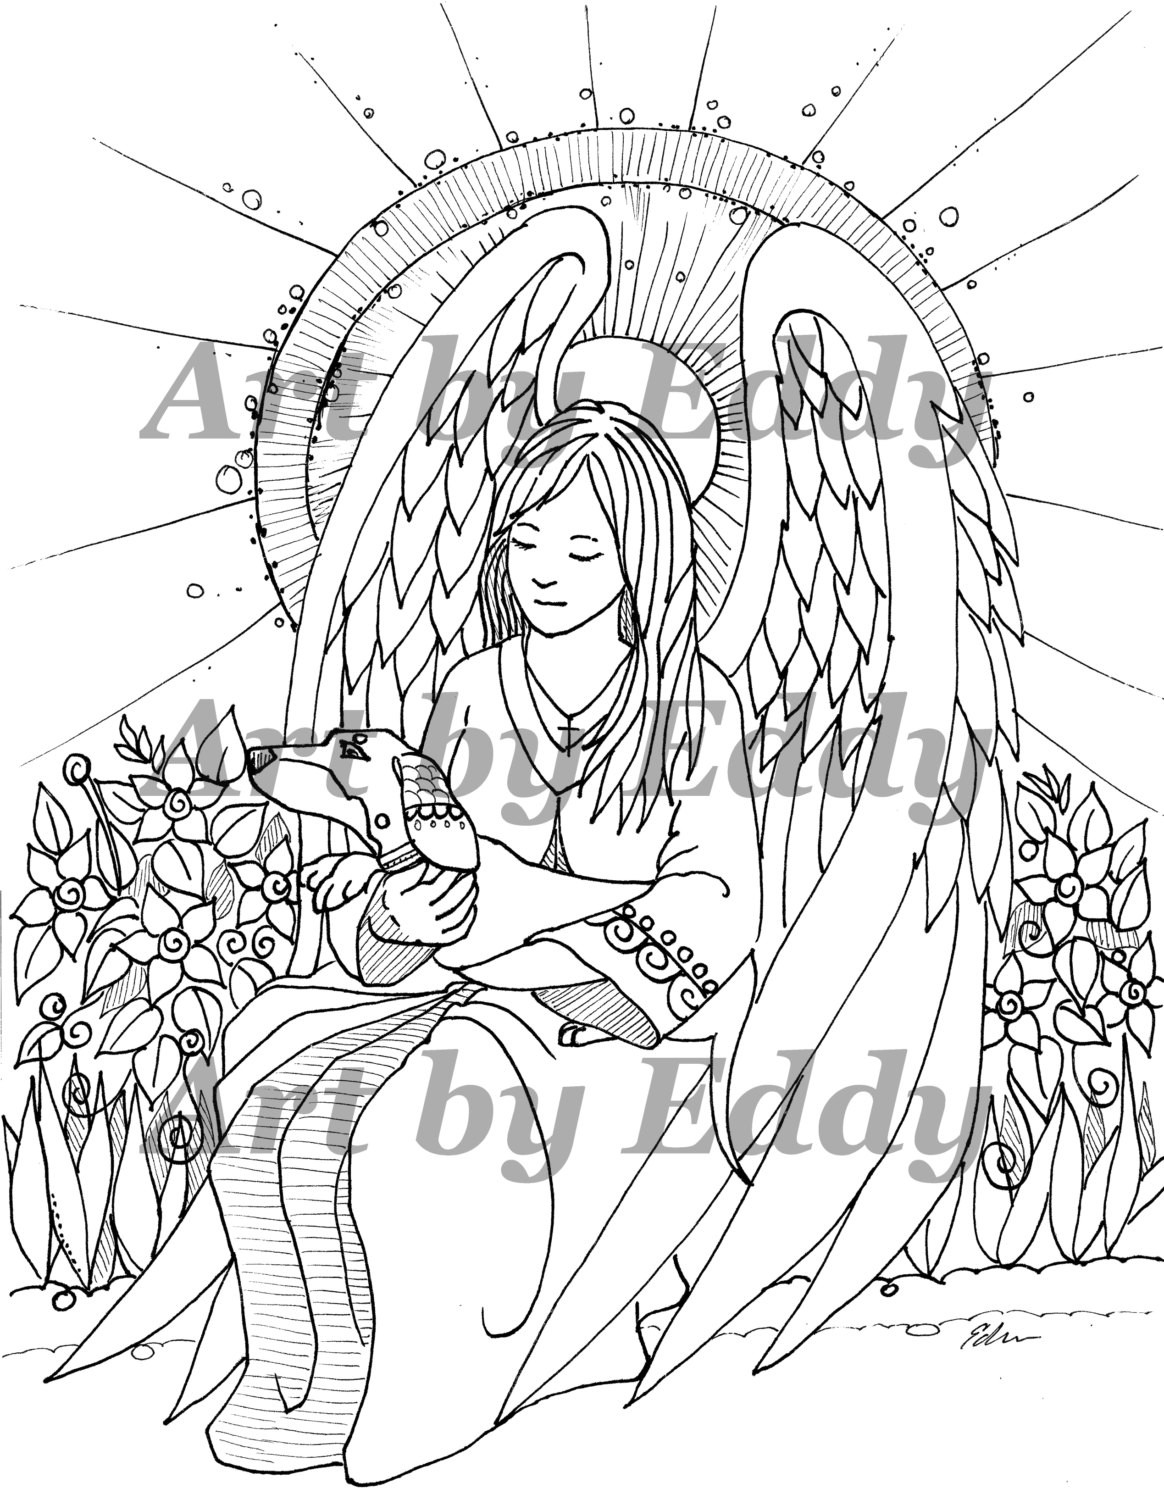 Daschund Coloring Book  Art of Dachshund Single Coloring Page Angel Doxie